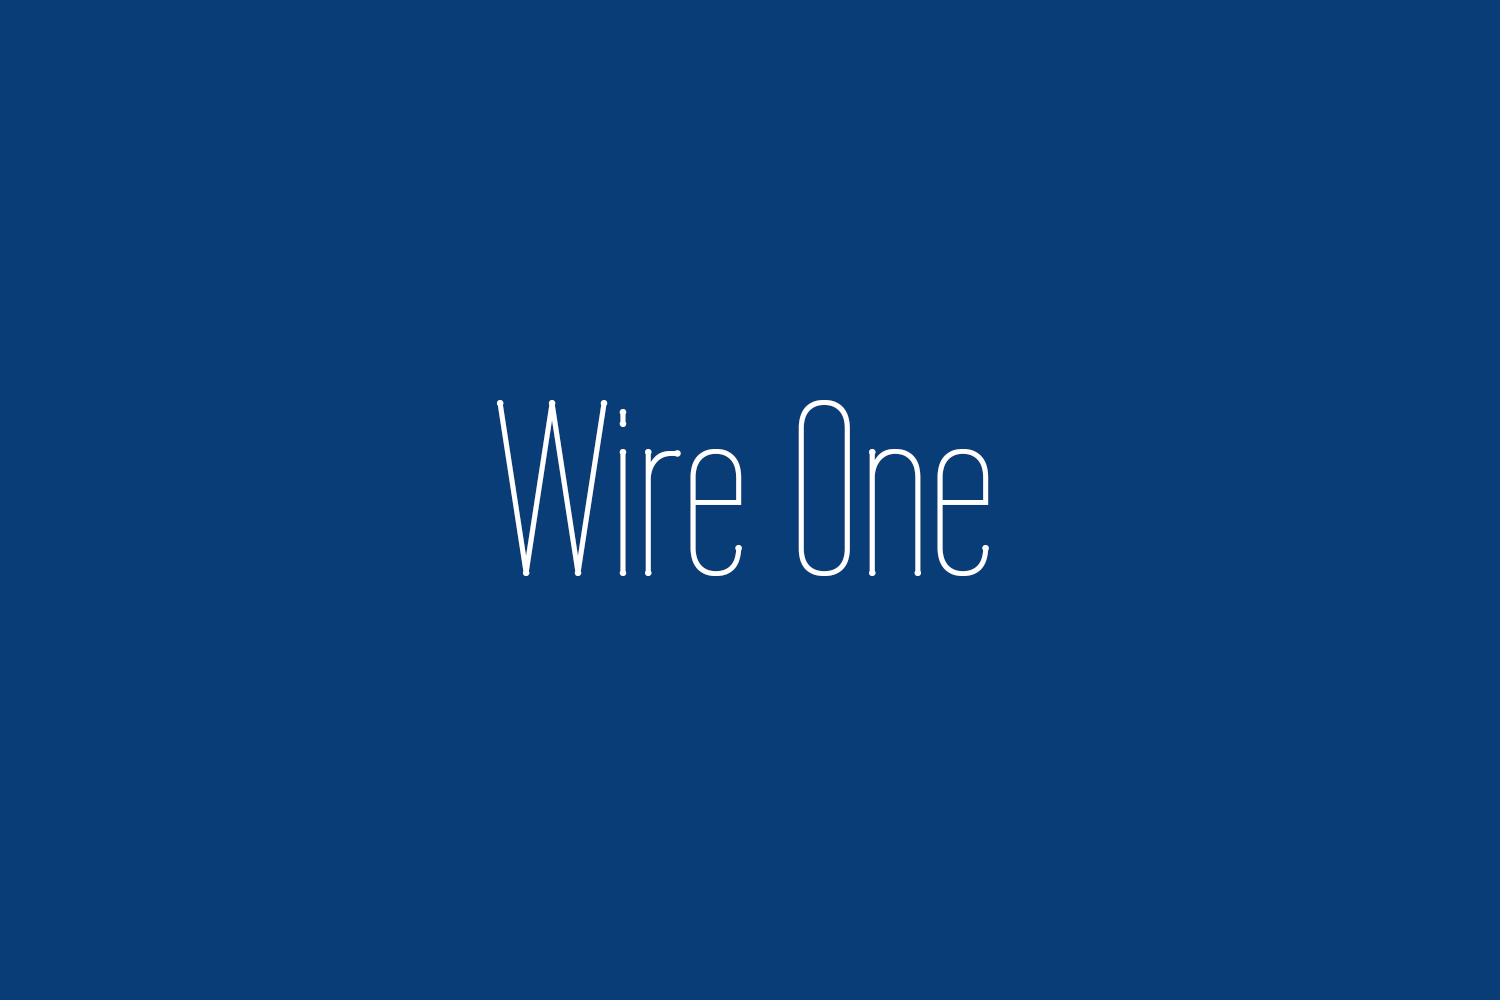 Wire One